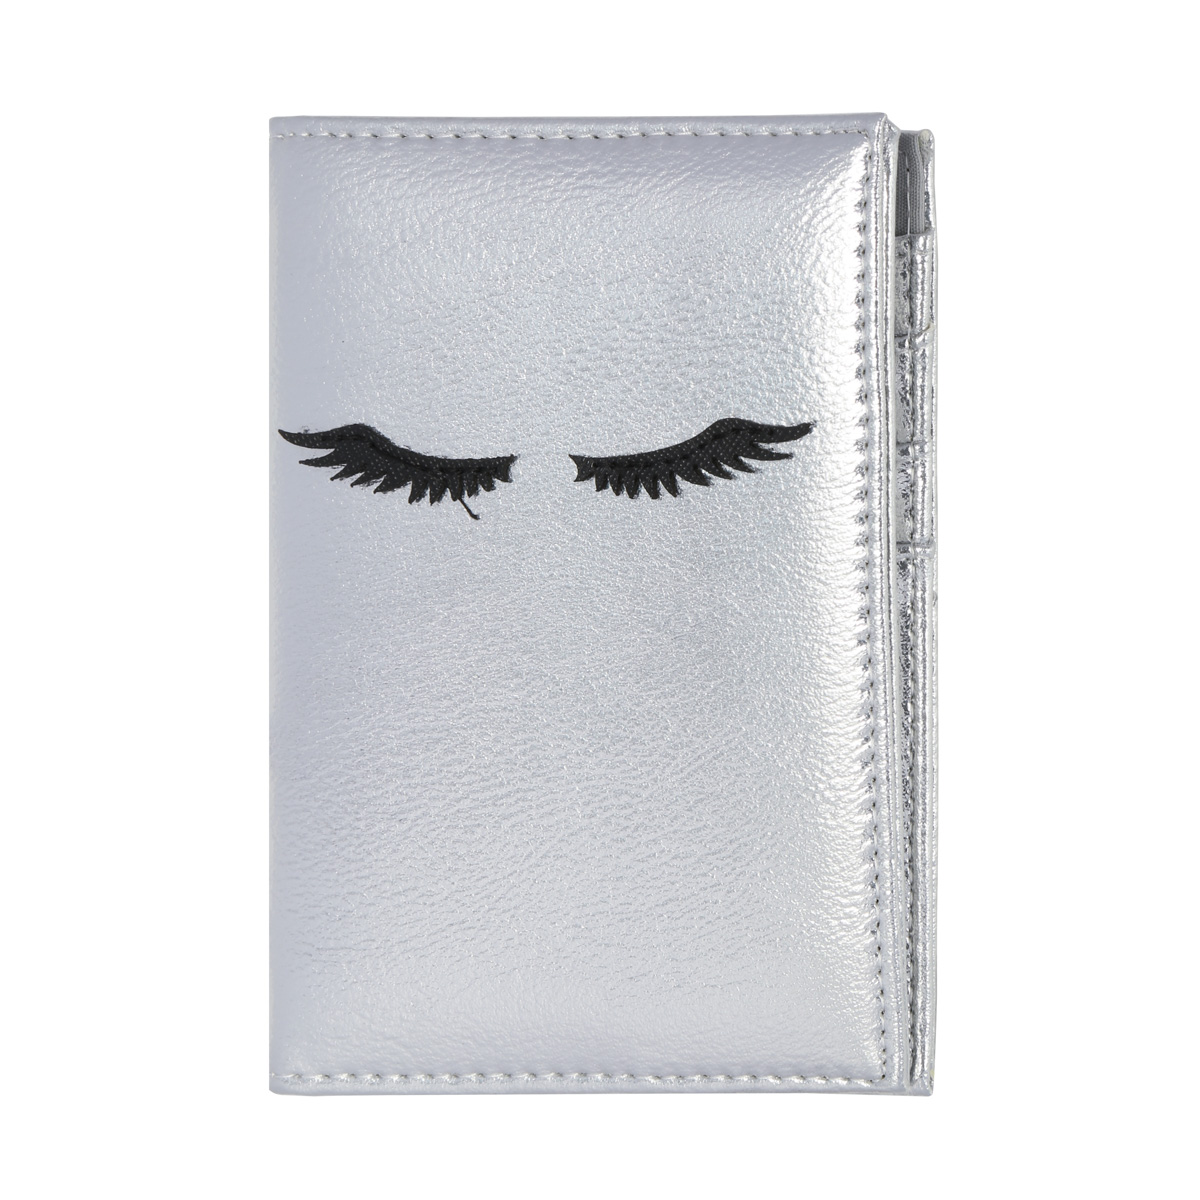 Reisepaß case lashes